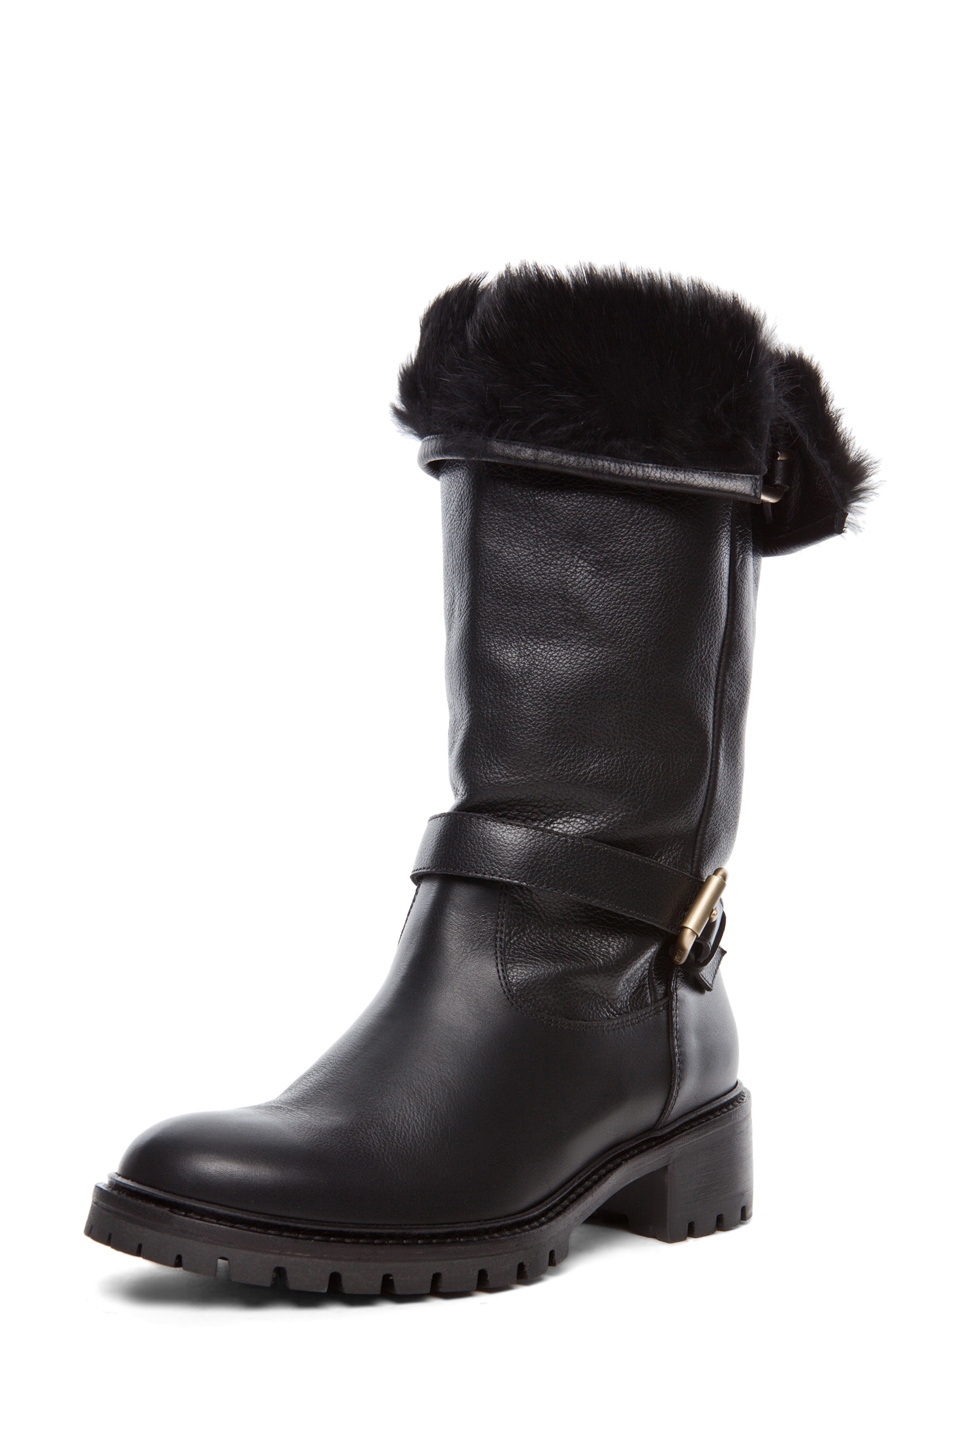 The North Face Stormkat Womens Cold-Weather Faux Fur Lined Winter Boots. Sold by BHFO. $ $ L'Amour Little Girls Black Suede Faux Fur Lining Ankle Boots Toddler. Sold by Sophias Style Boutique Inc. $ $